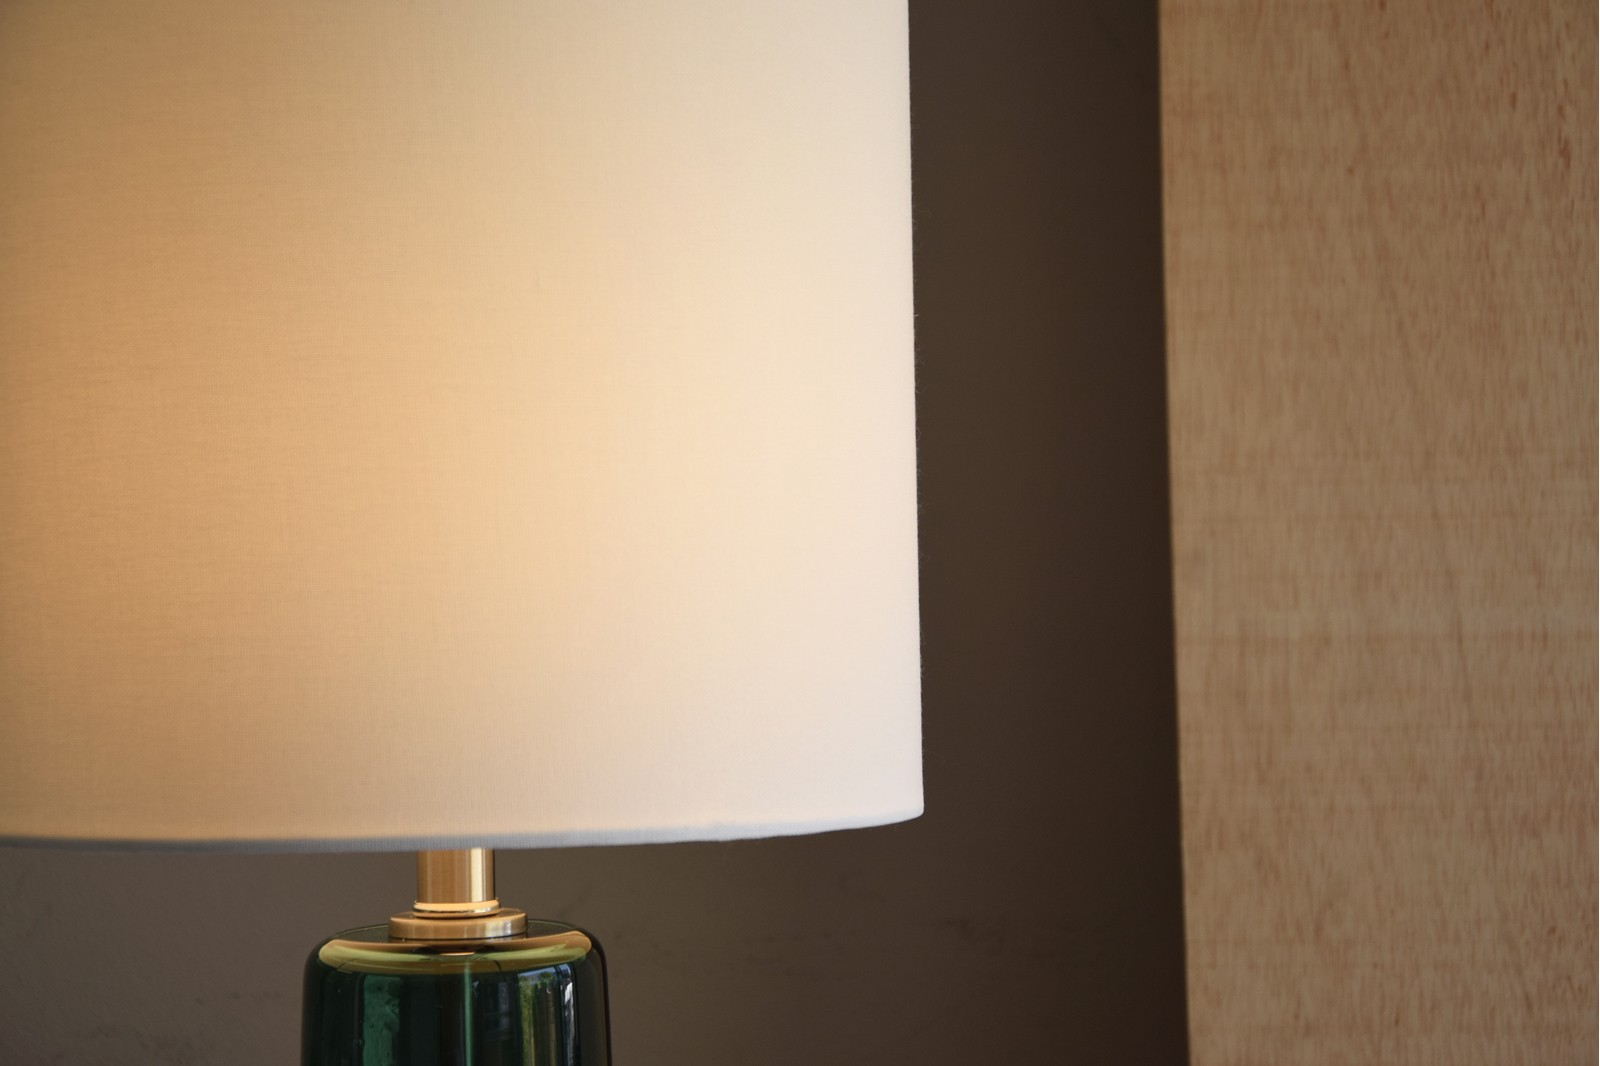 GREEN GLASS TABLE LAMP WITH SHADE